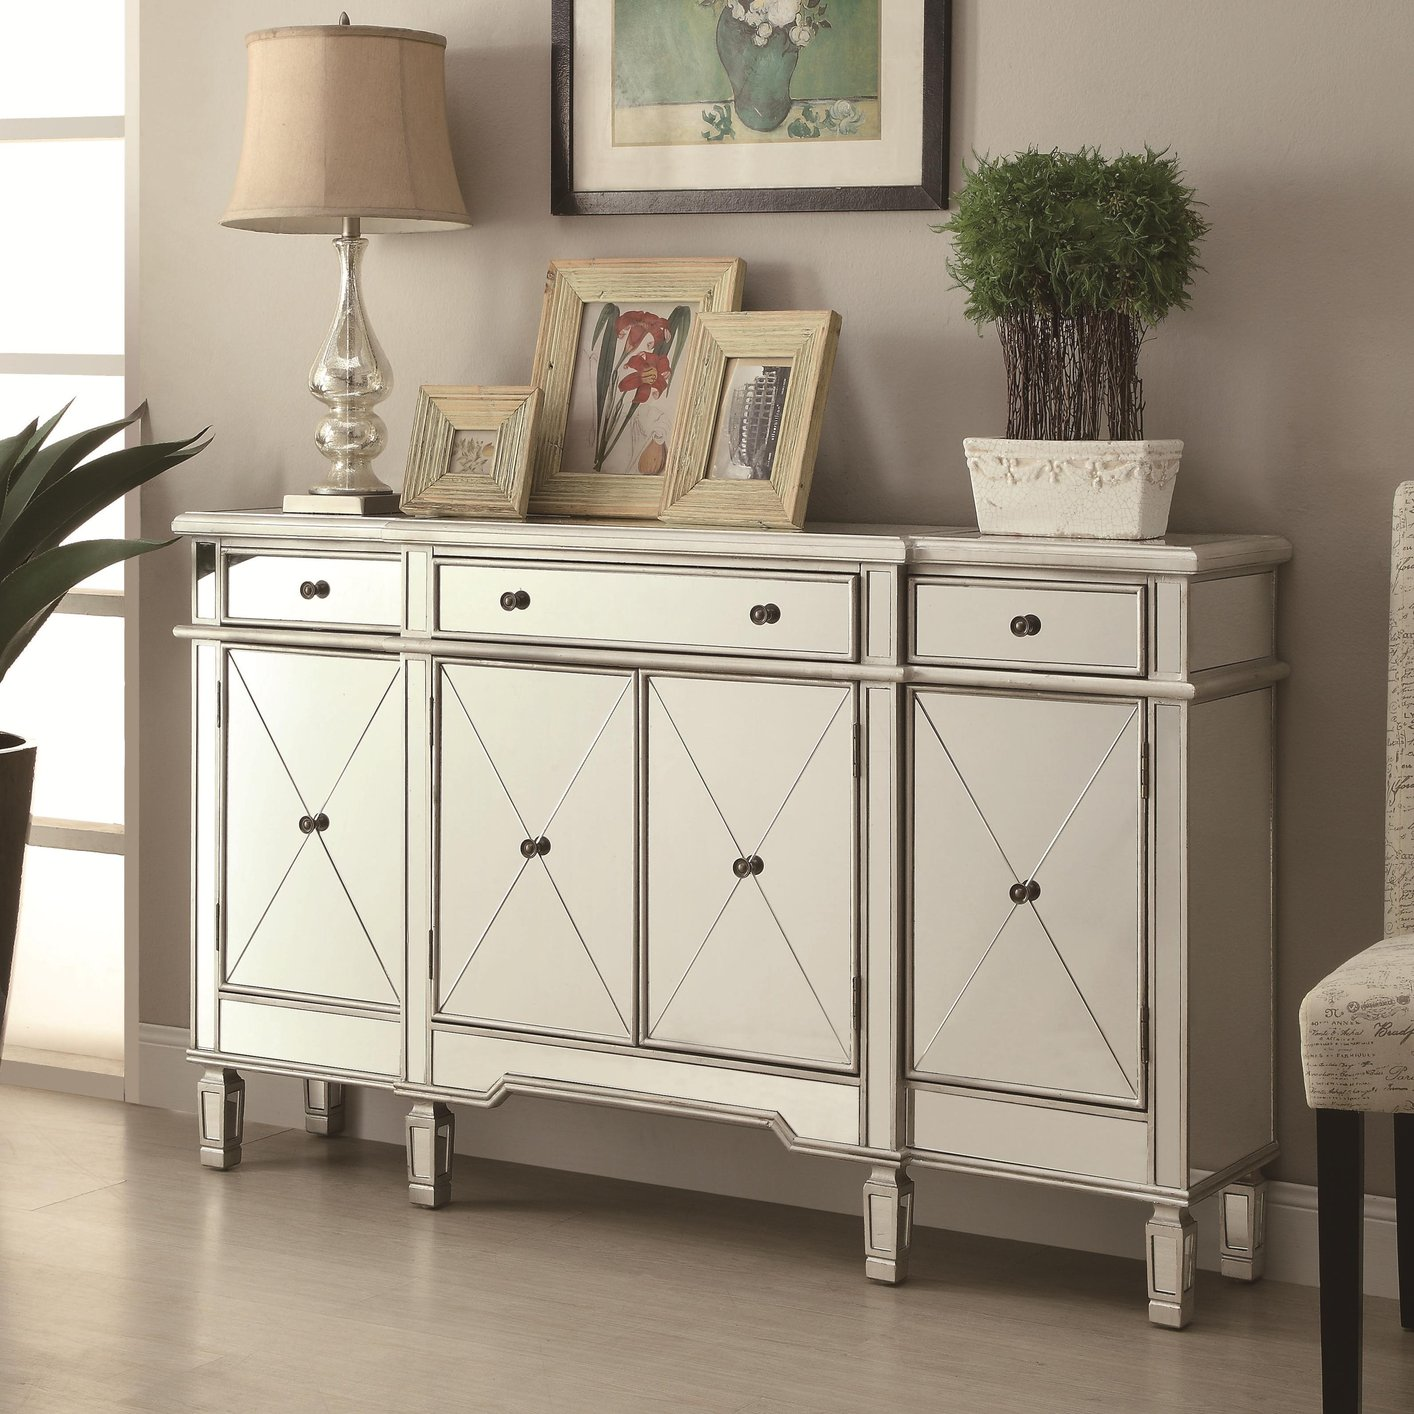 Silver Glass Accent Cabinet Steal A Sofa Furniture Outlet Los